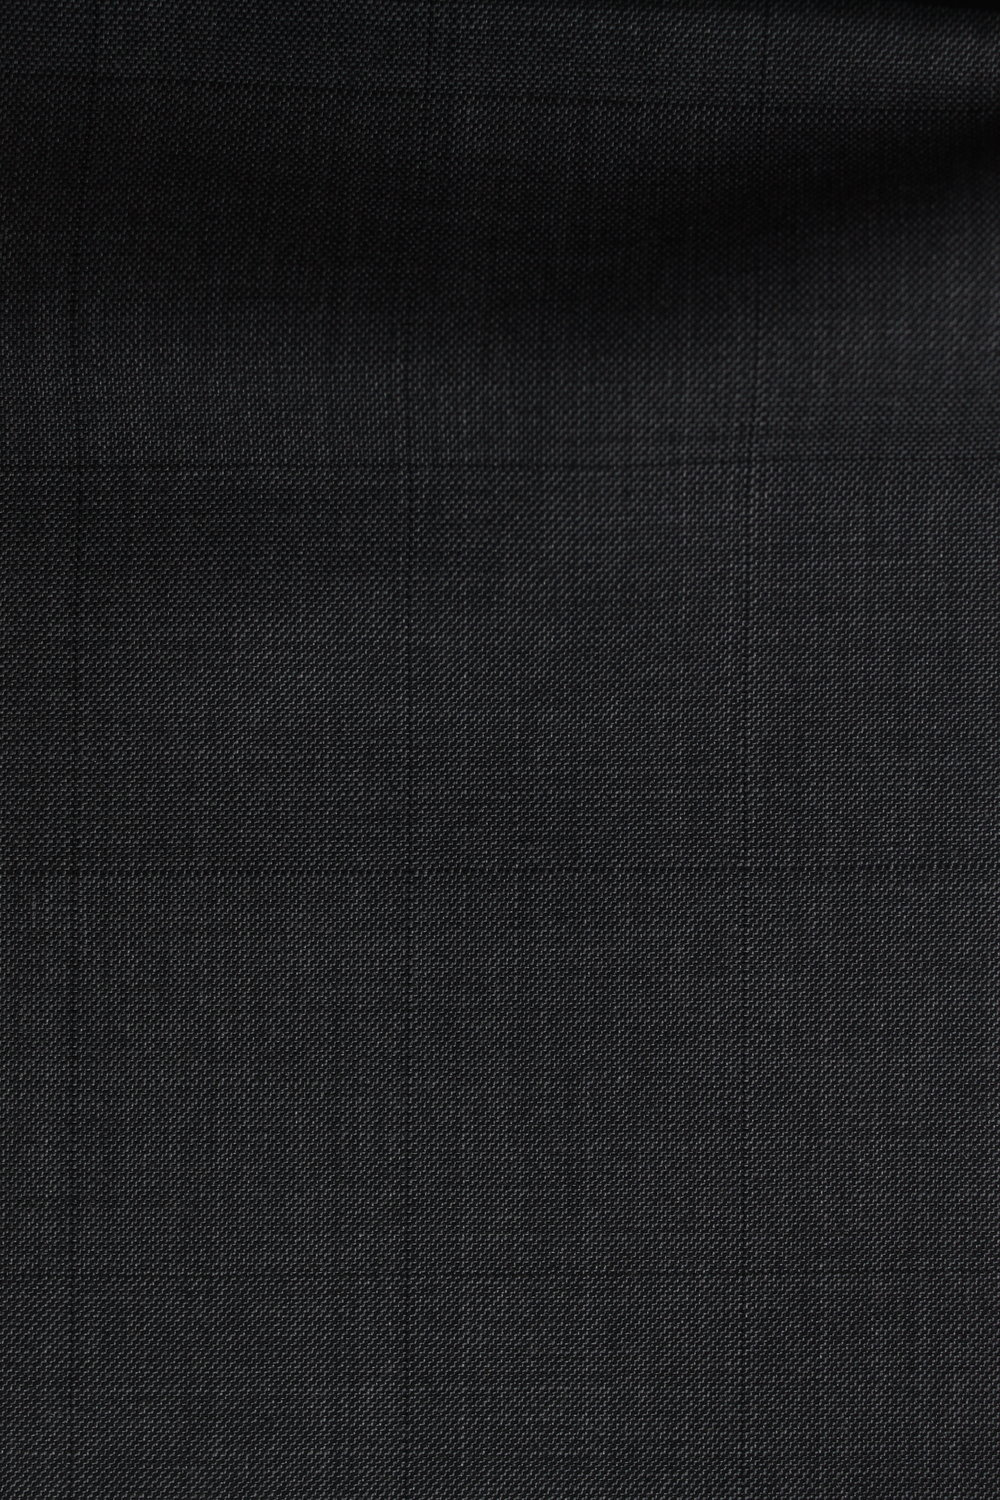 7160 Coal Grey Windowpane Pick 270g.JPG